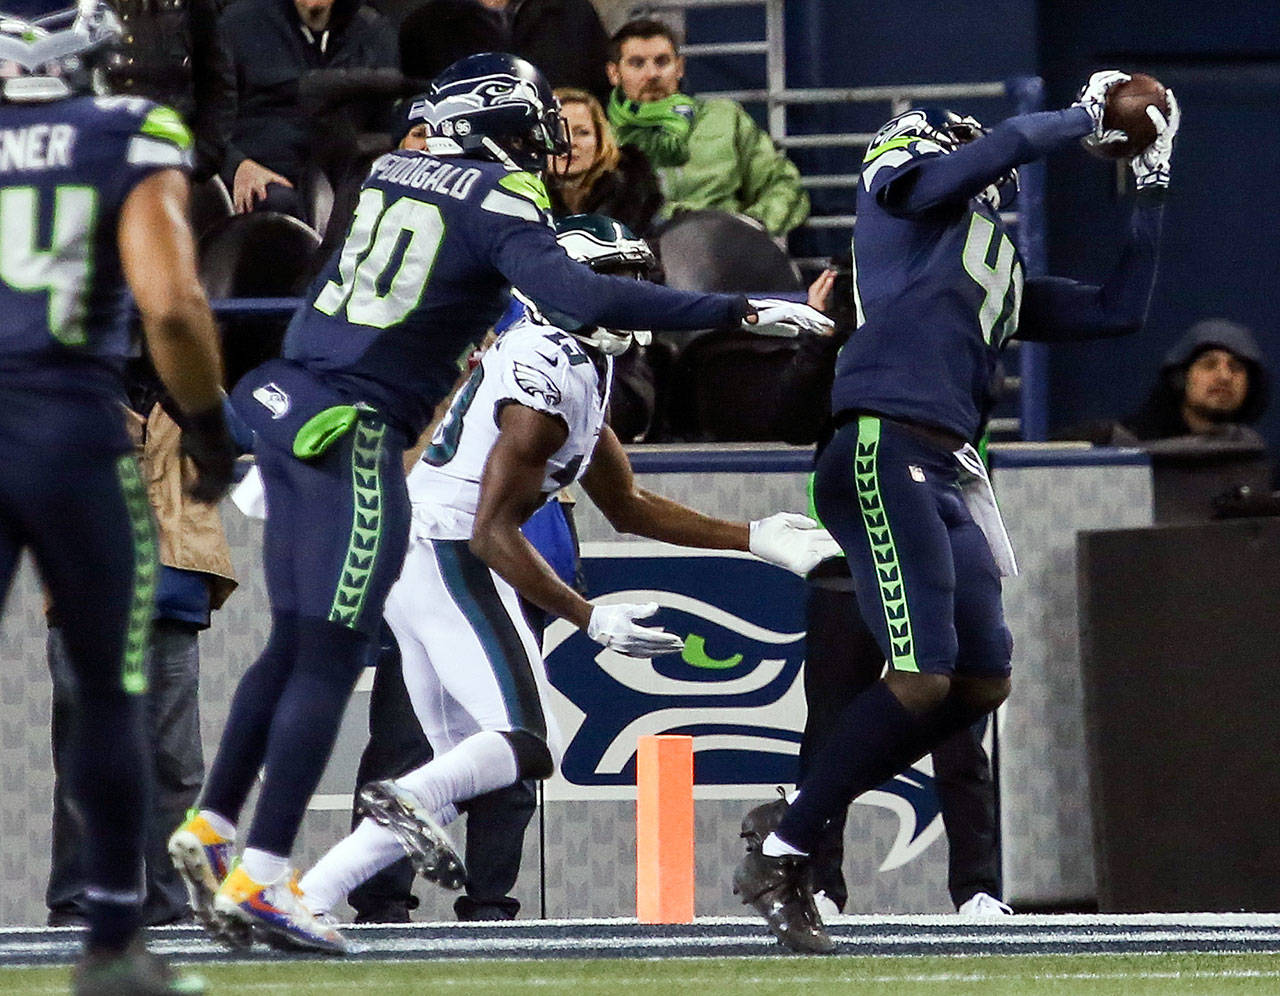 Seahawks Bryon Maxwell makes an interception to seal the win agains the Eagles Sunday night at CenturyLink Field in Seattle on December 3, 2017. Seattle won 24-10. (Kevin Clark / The Herald)